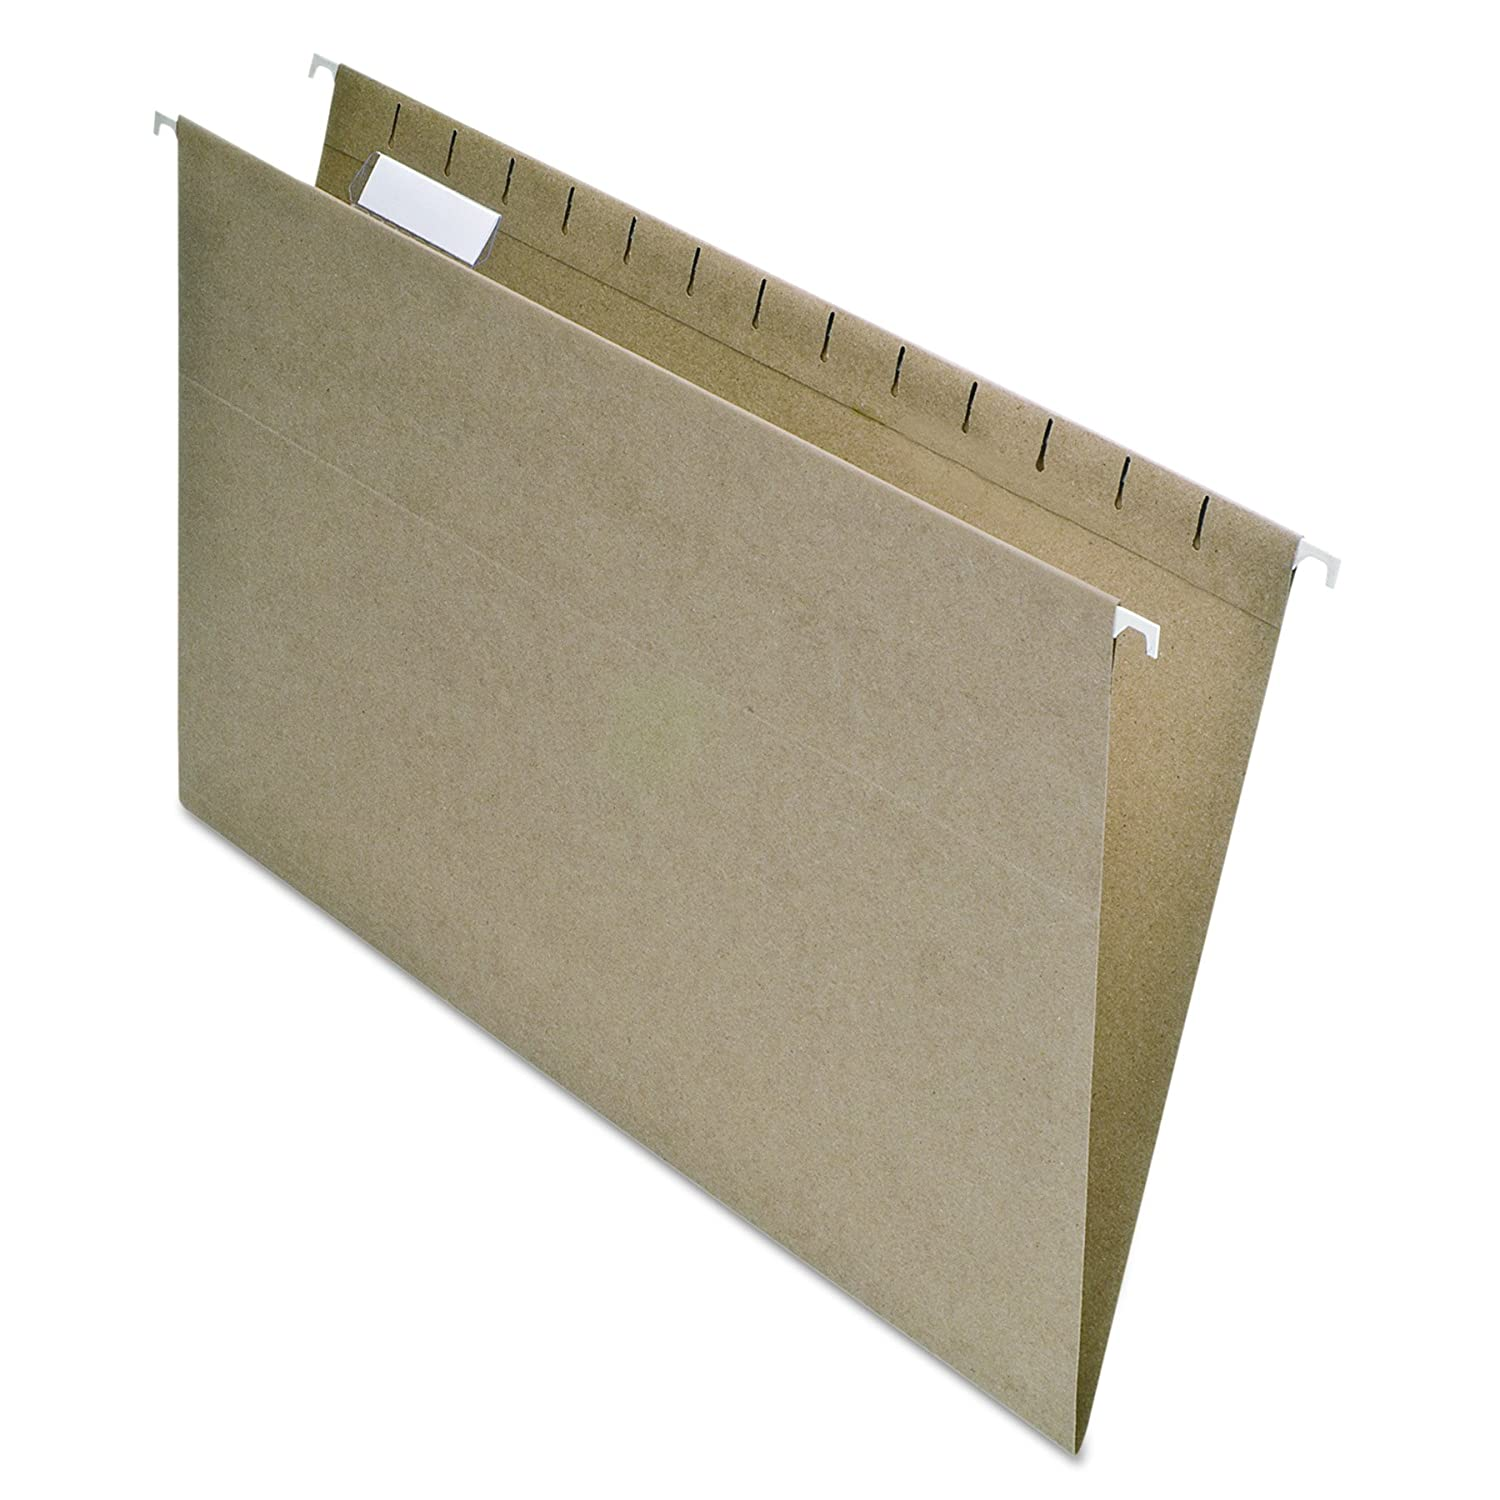 EarthWise by Pendaflex 100% Recycled Hanging File Folders, Legal Size, 1/5 Cut, Natural, 25 per Box (76542) Esselte Corporation PFX76542